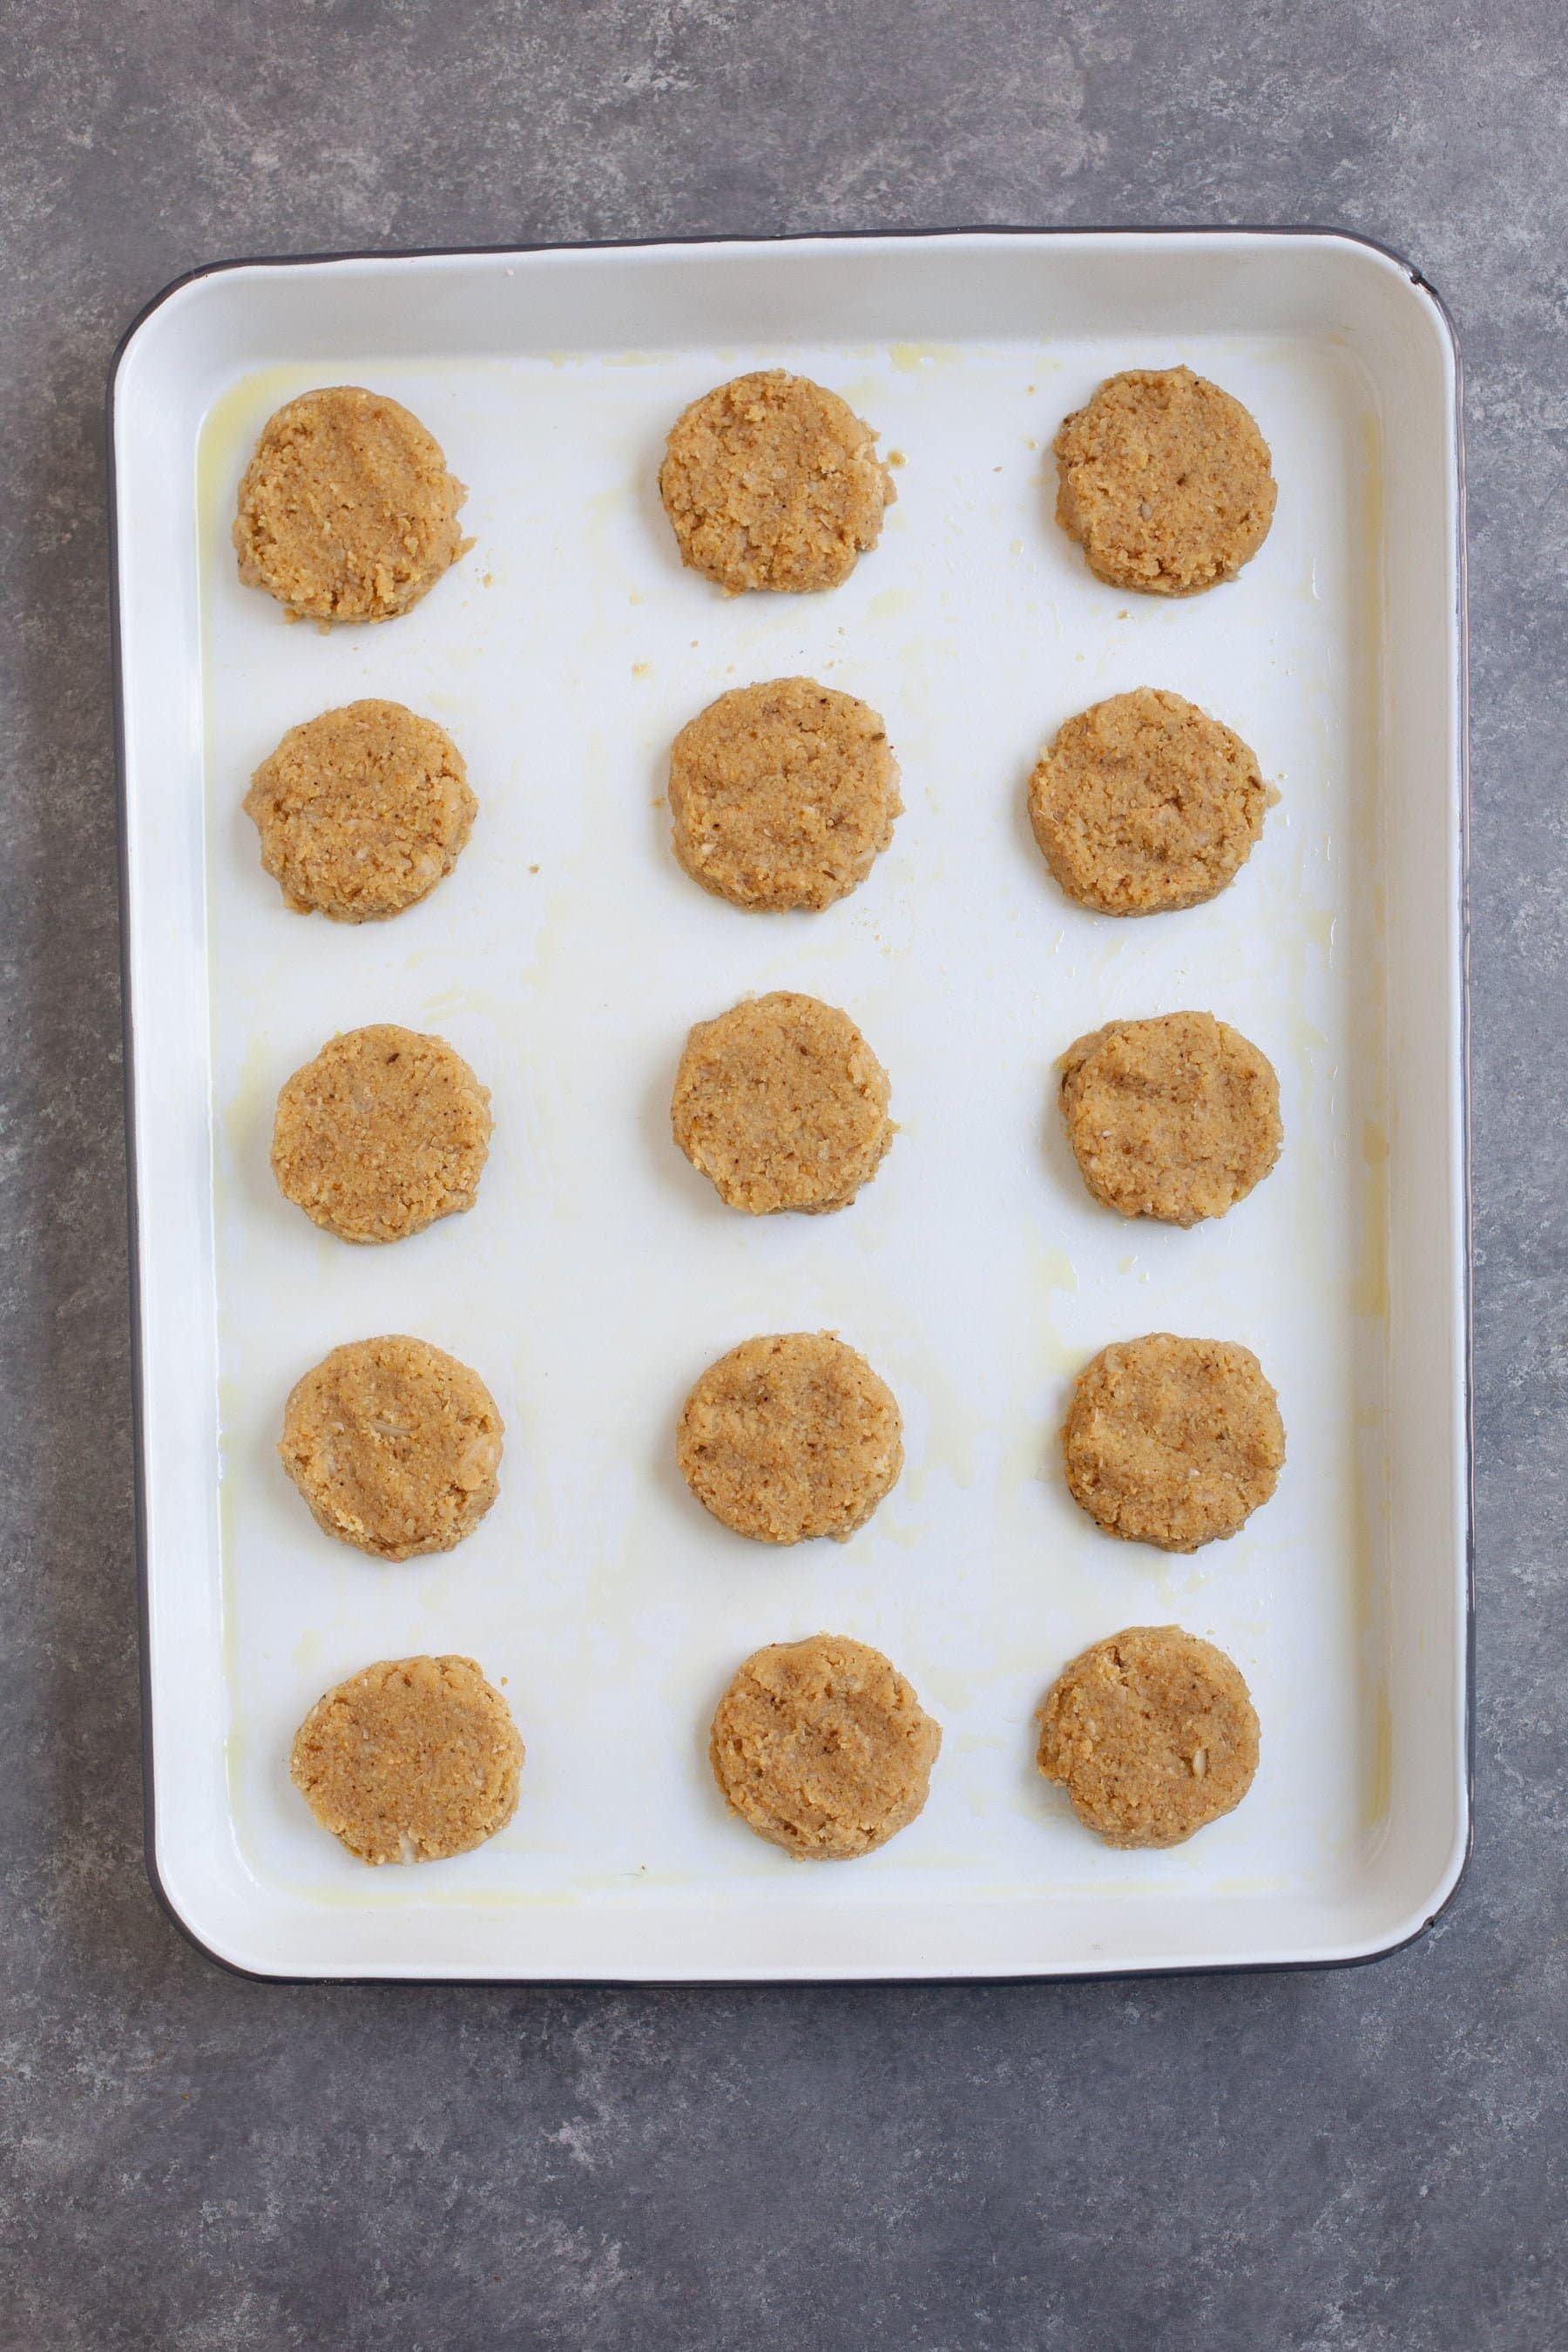 Falafel patties lined up on a baking dish, ready for cooking